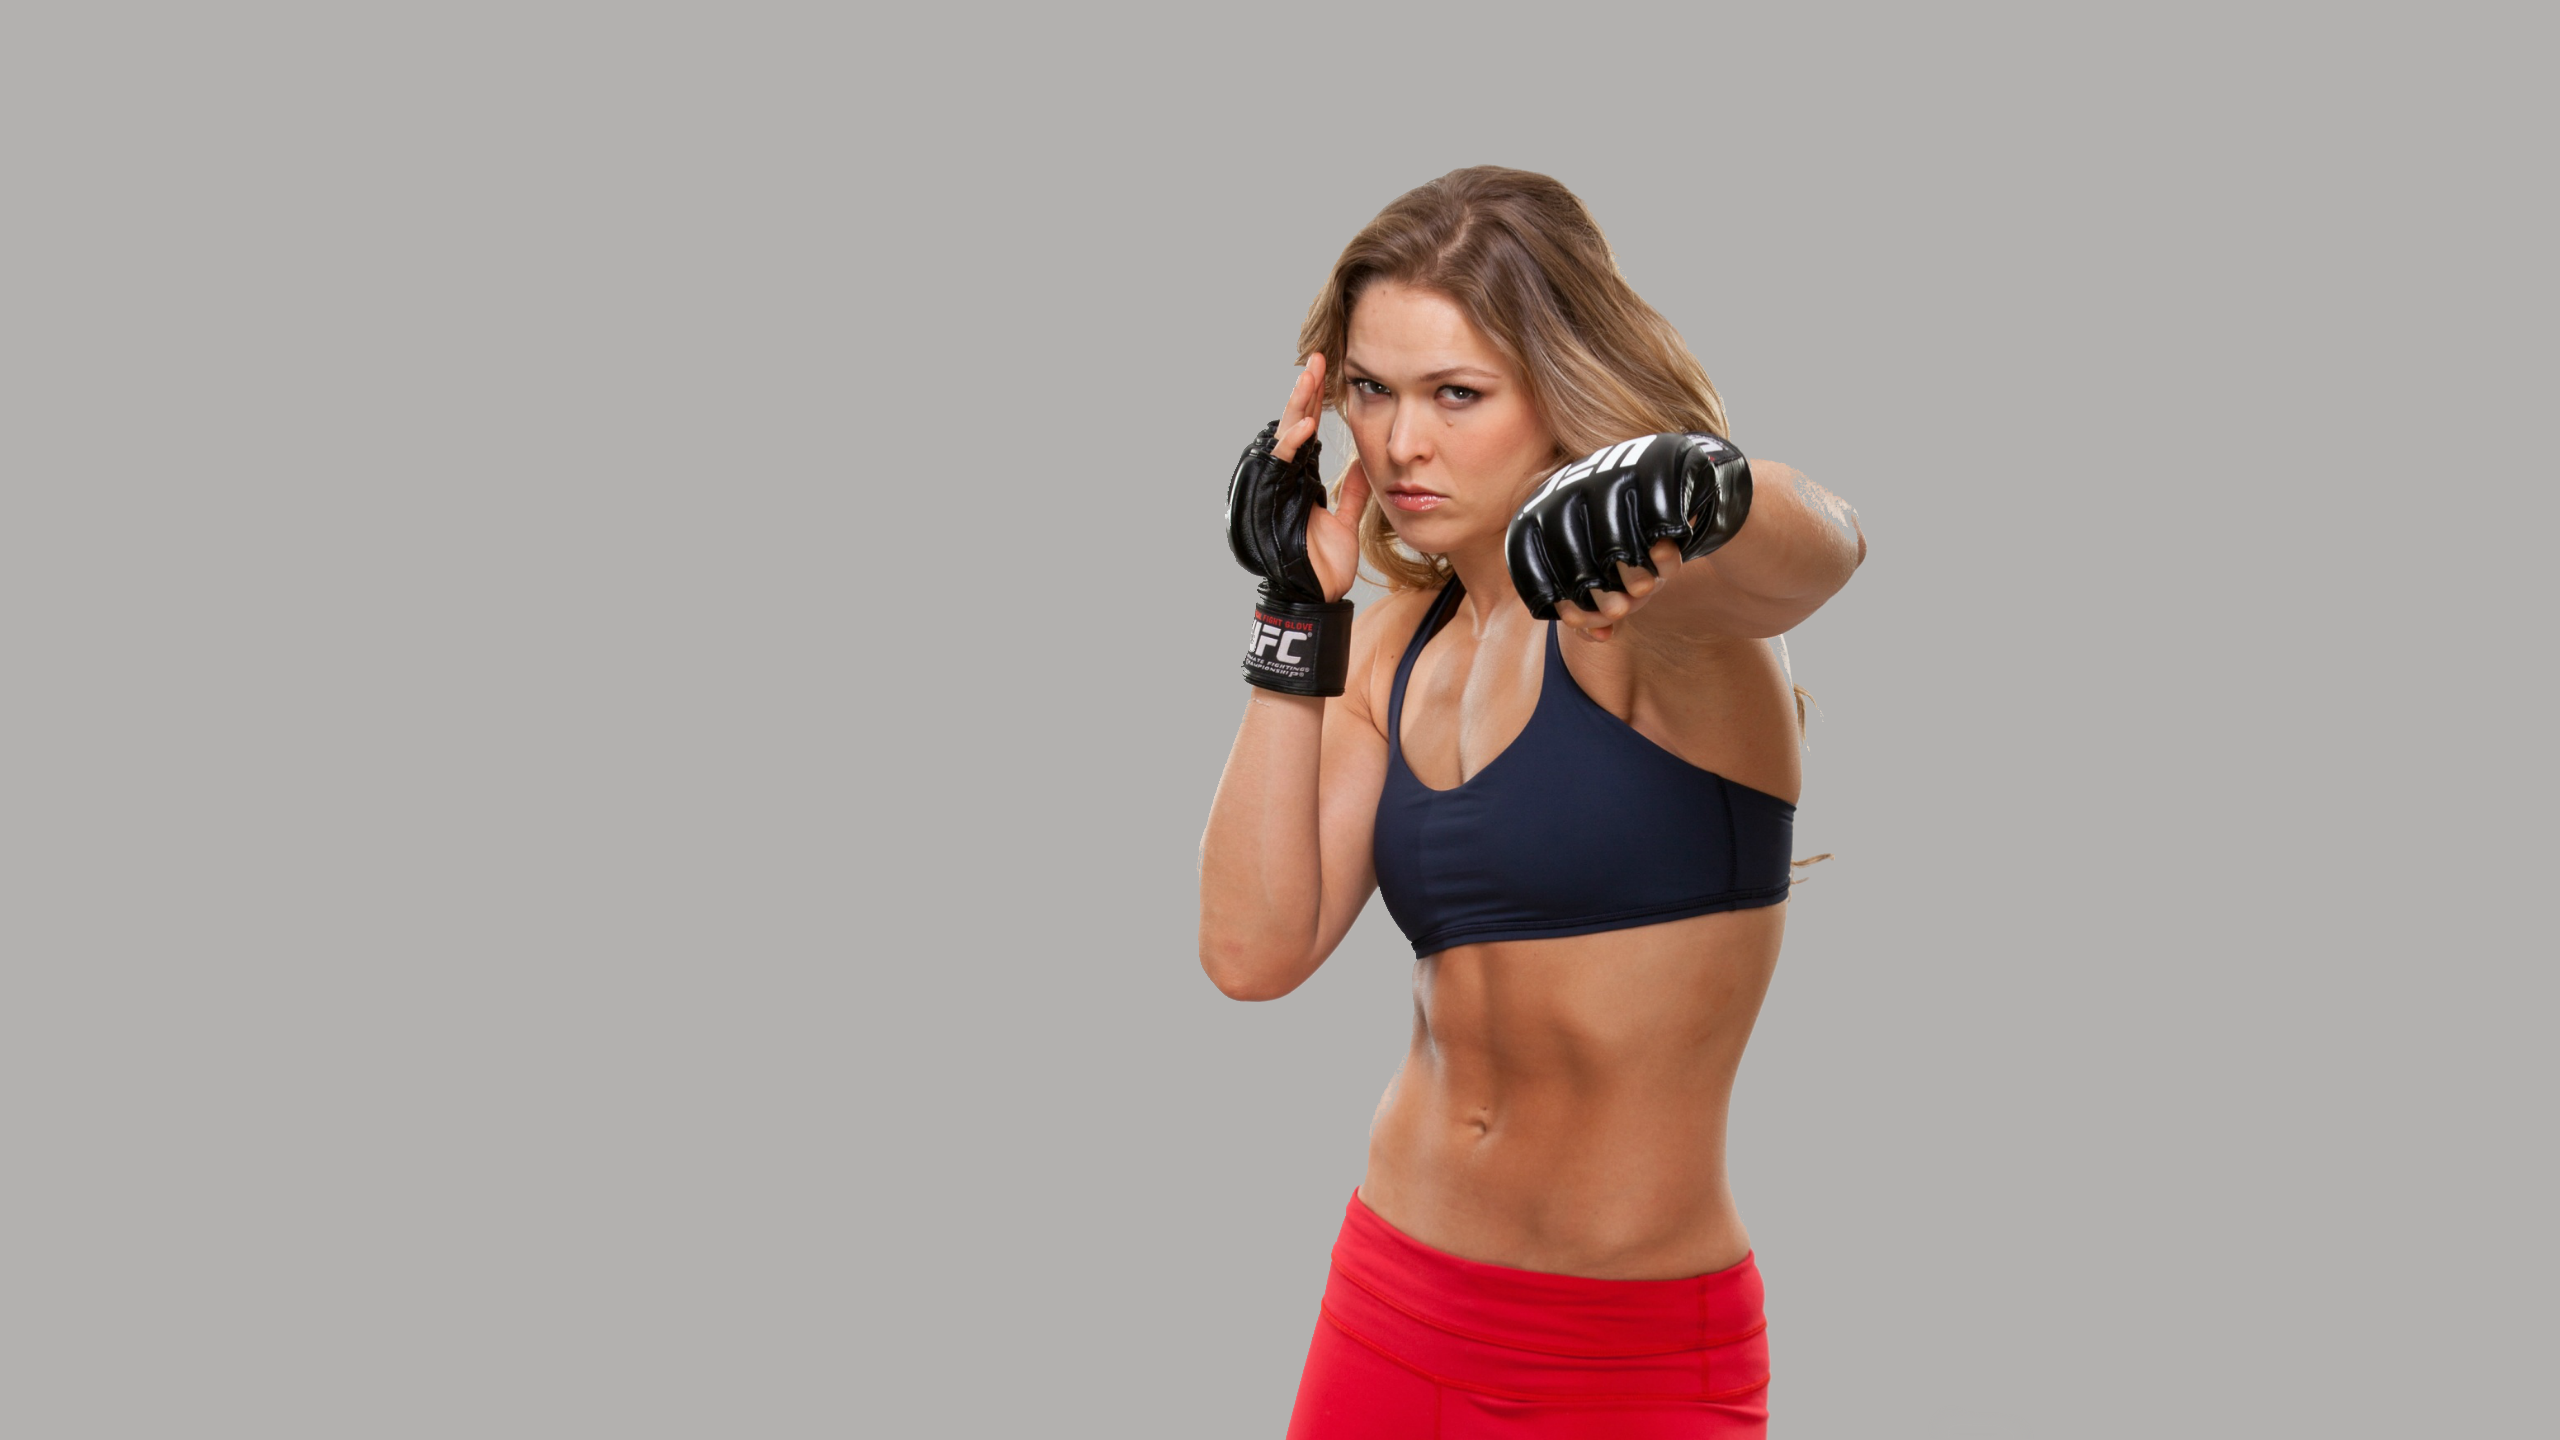 Ronda rousey wallpaper in high resolution for free get ronda rousey